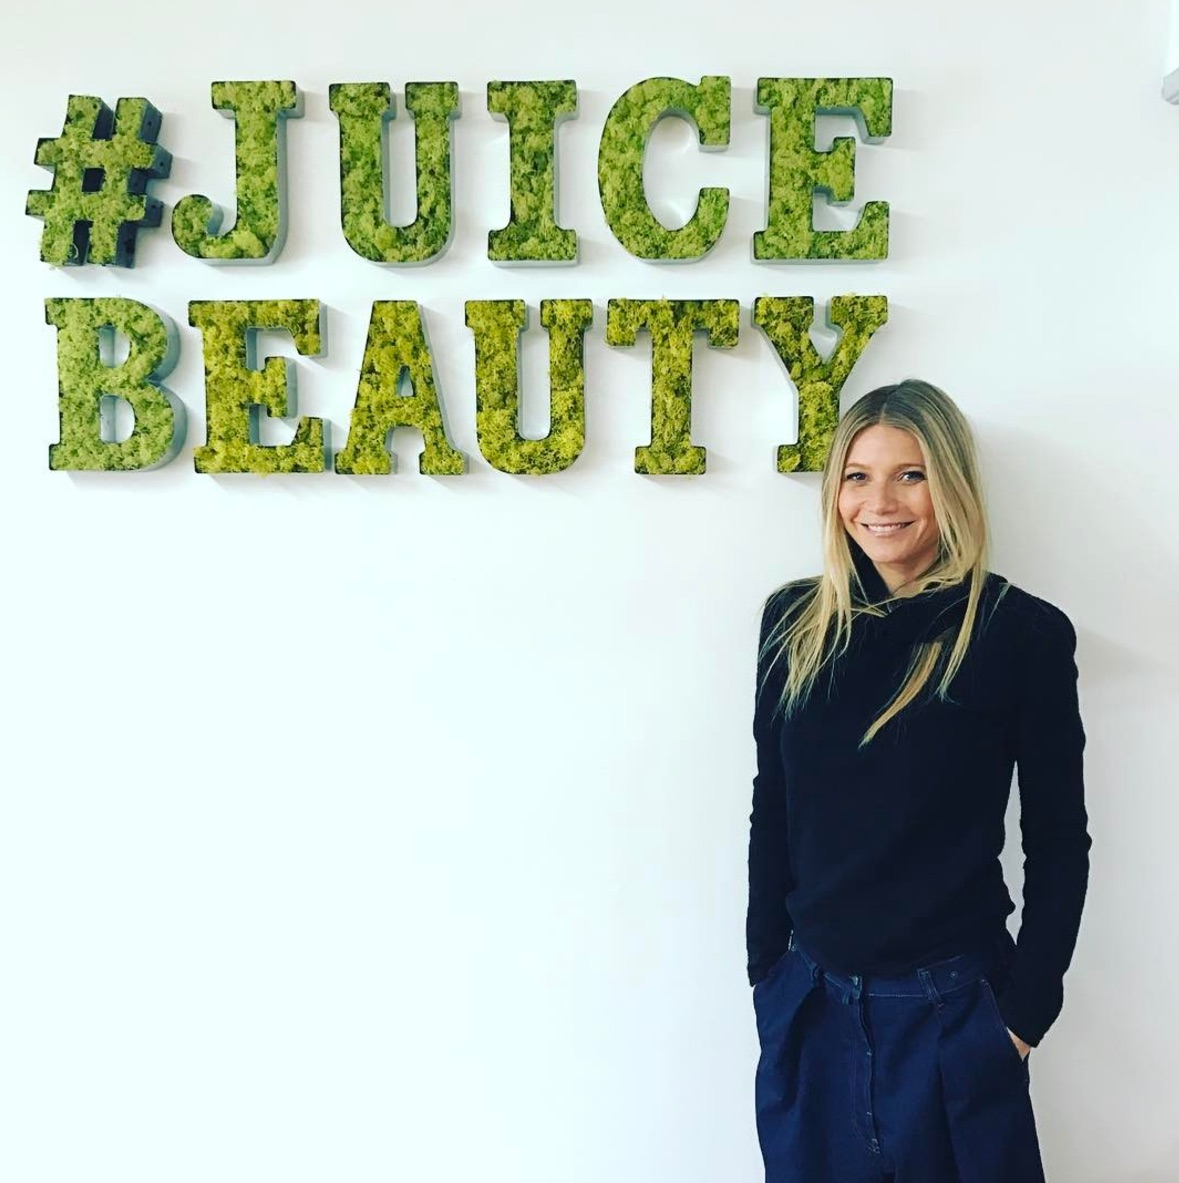 Gwyneth Paltrow at Juice Beauty